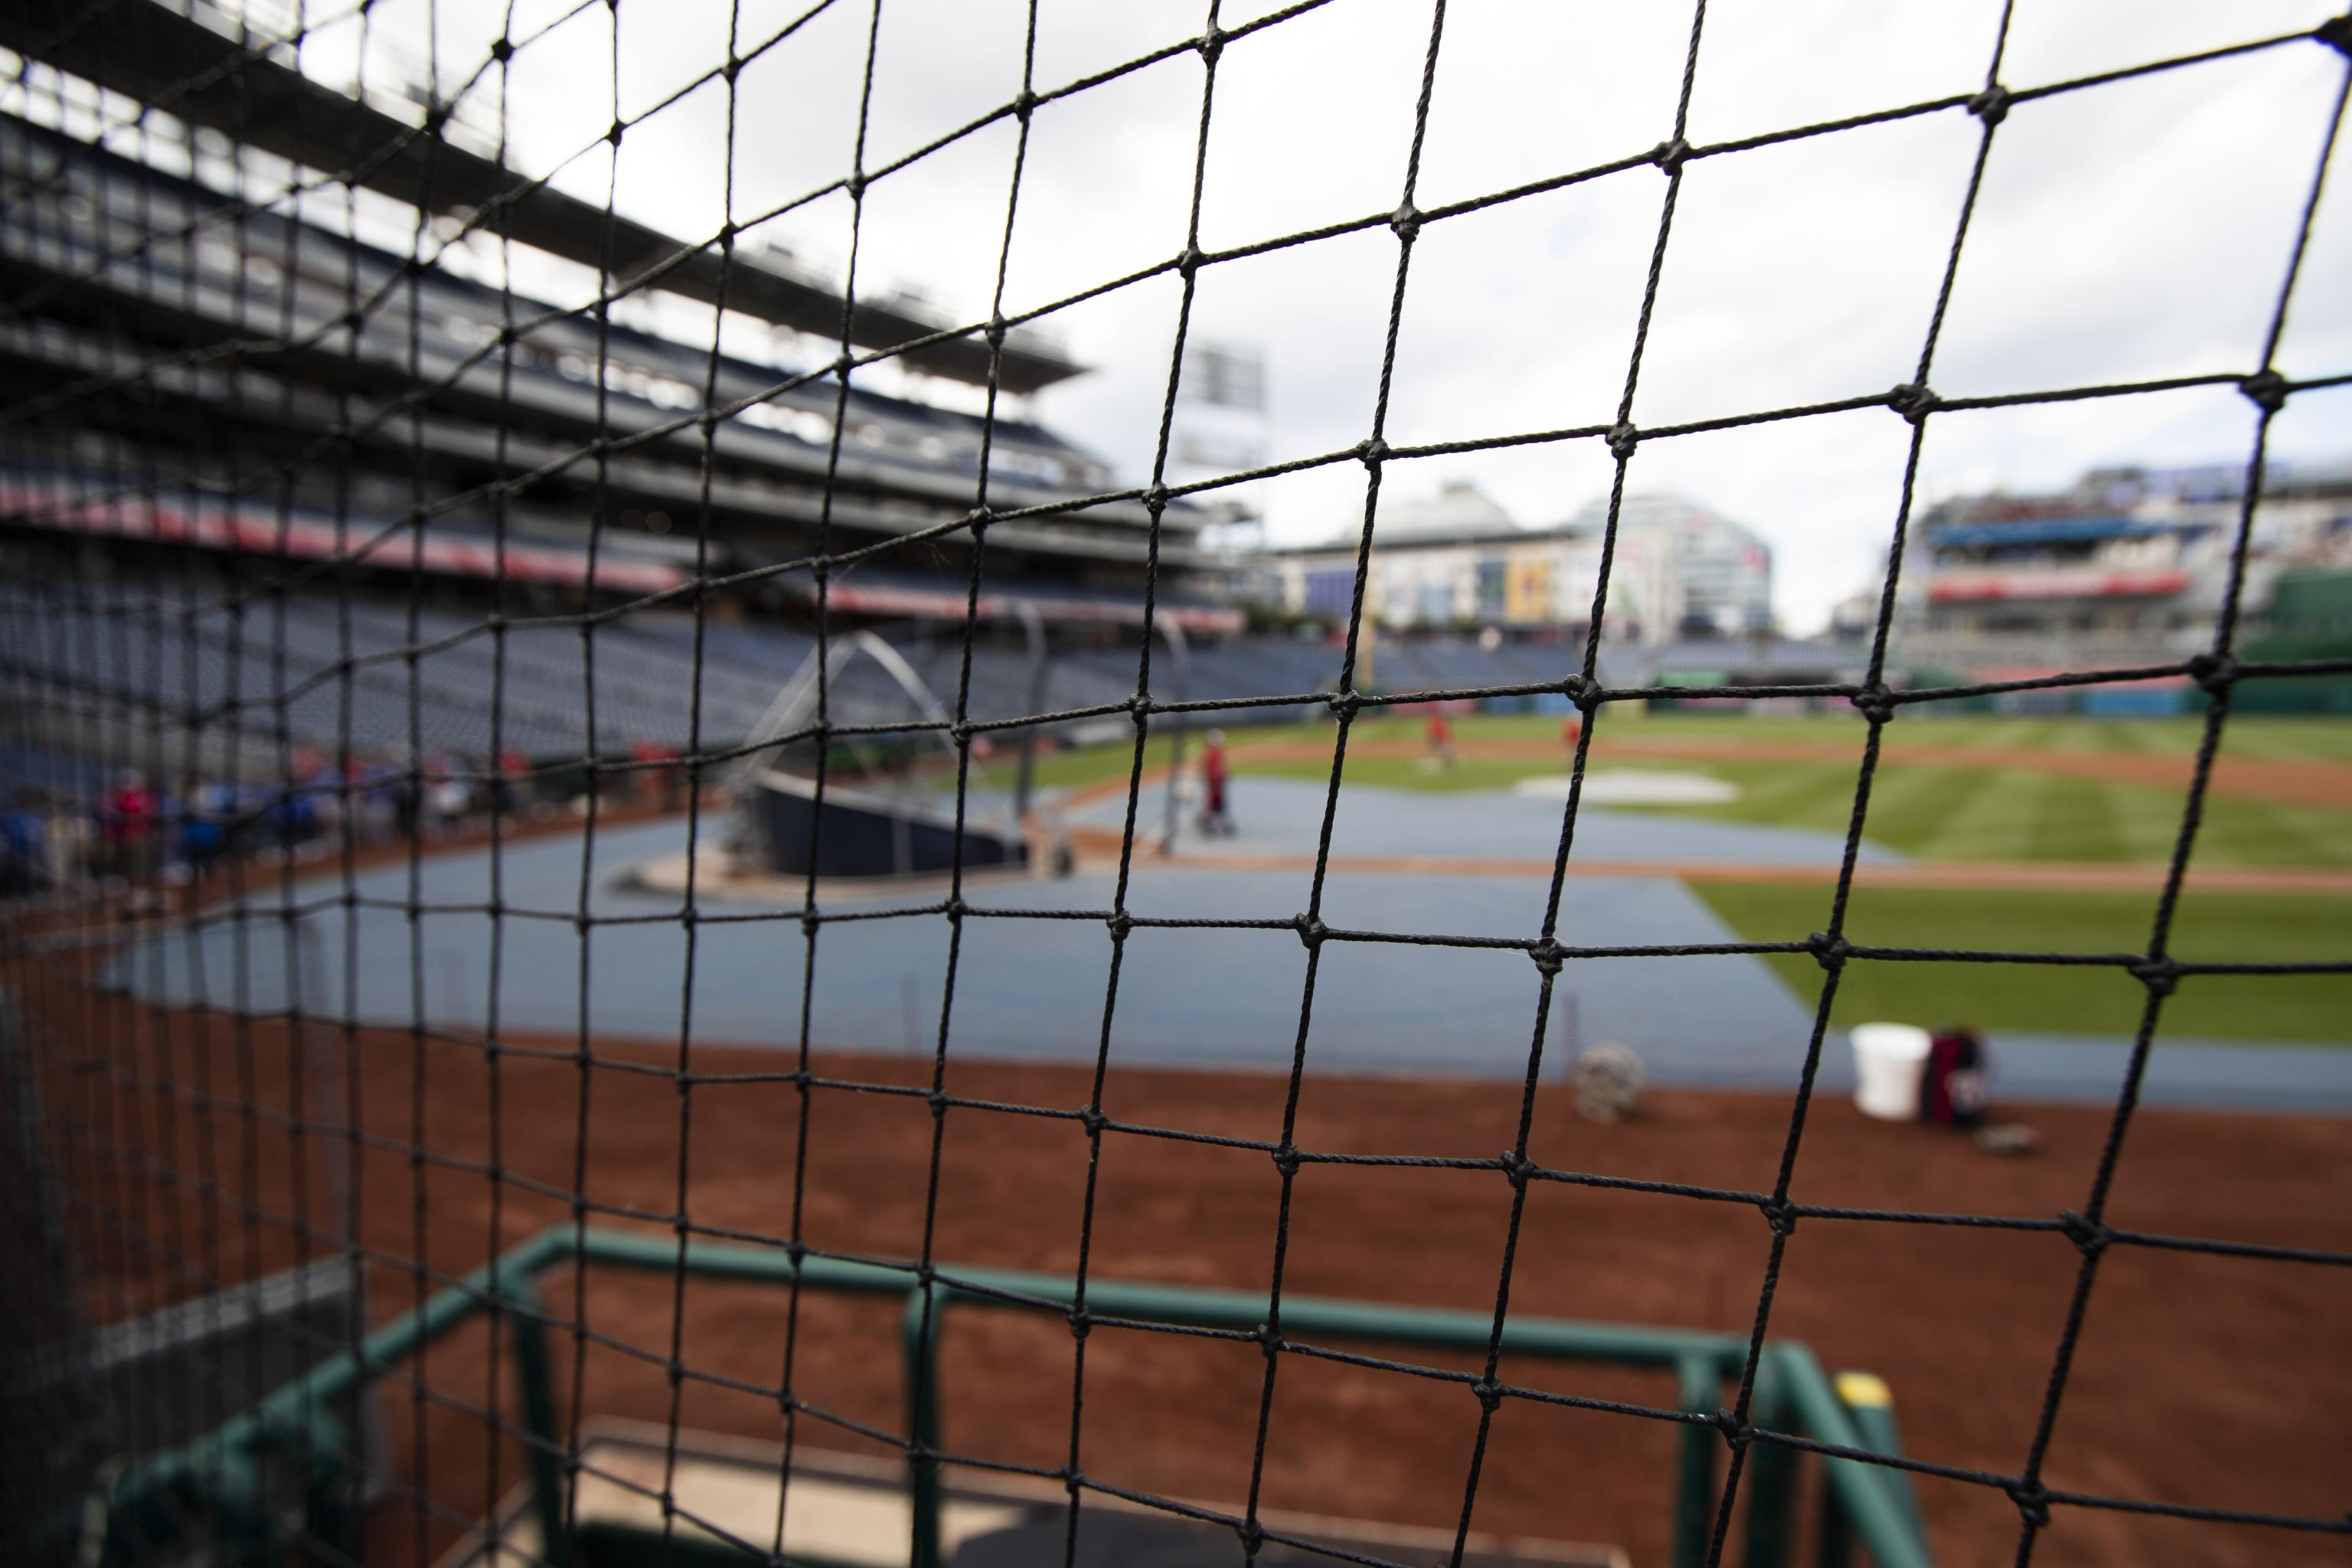 3efc20c1a 2 US Senators Write Rob Manfred, Urge MLB to Expand Protective Netting |  Bleacher Report | Latest News, Videos and Highlights